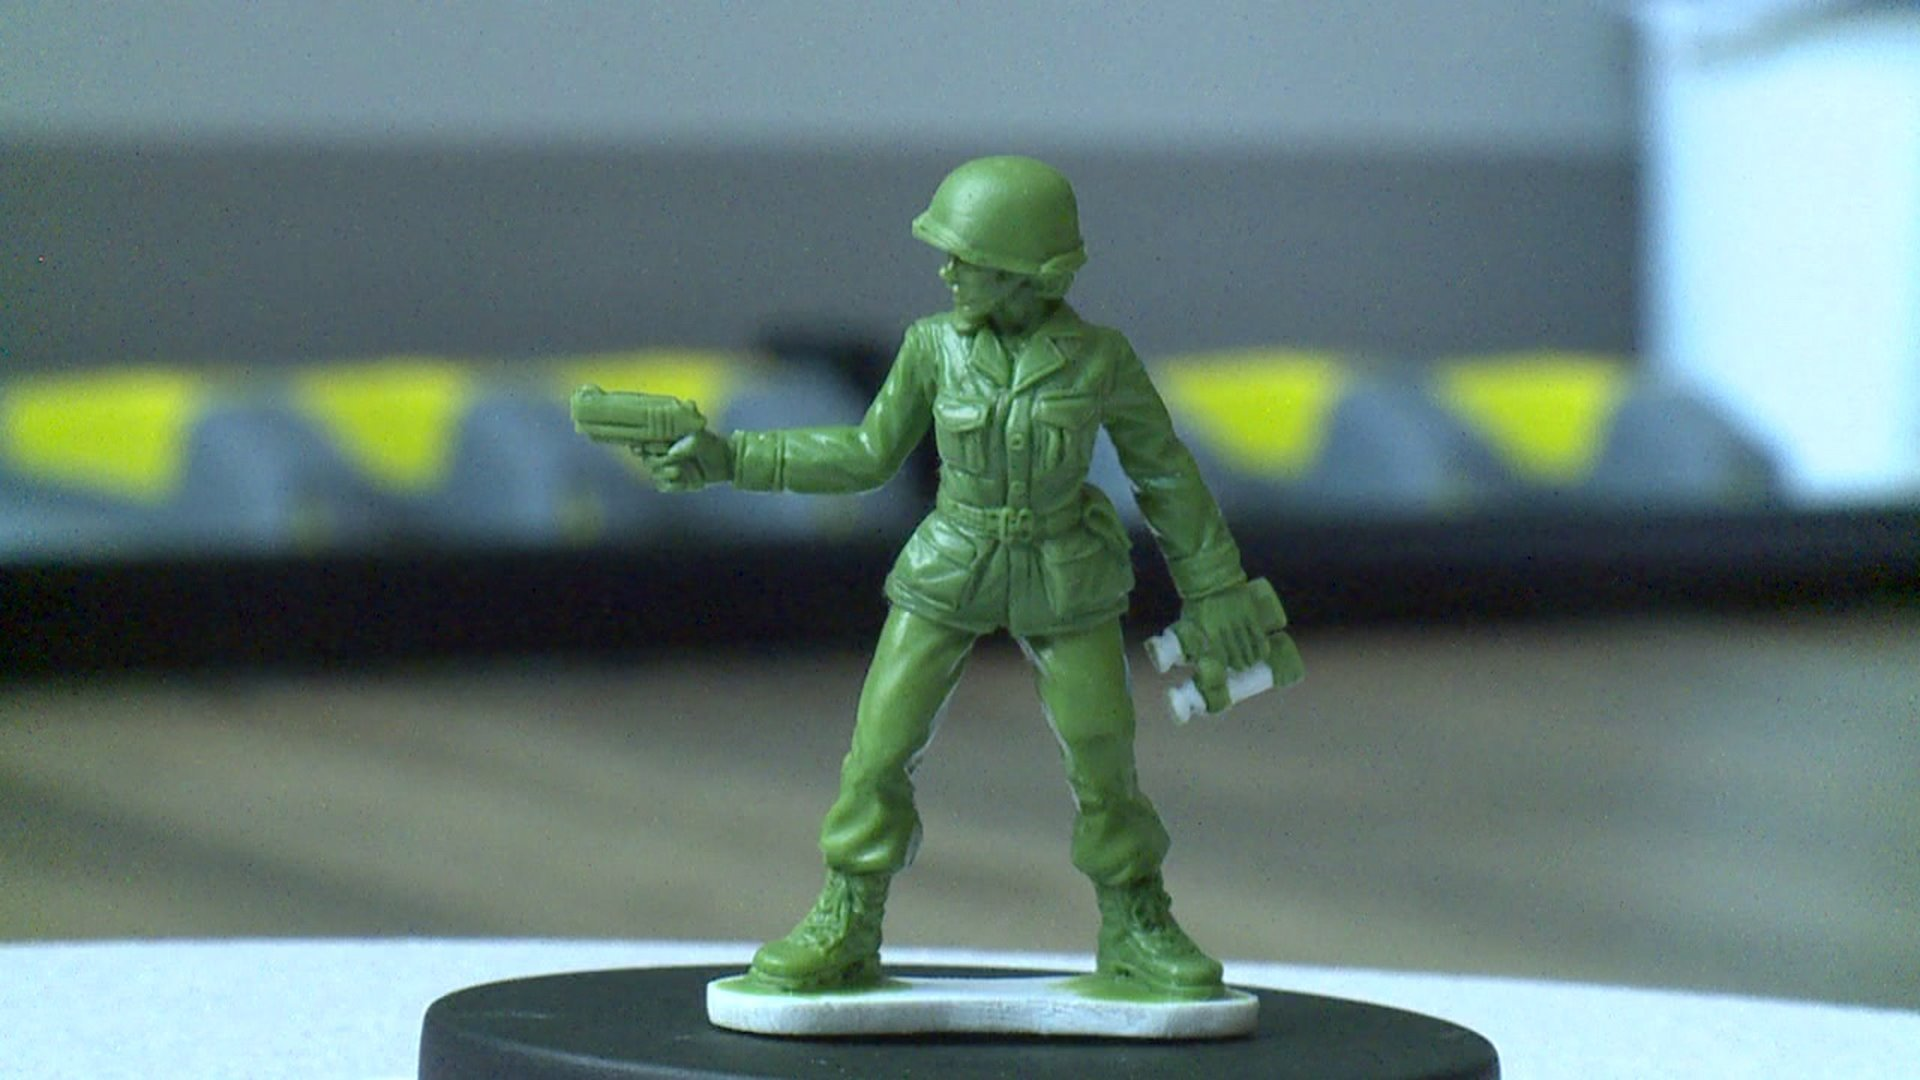 A toy manufacturer in Scranton is using some imagination in the fight for equality. The small operation is one of the only makers of toy plastic Army men, and soon, it'll be expanding the line to include Army women. (Credit: WNEP)